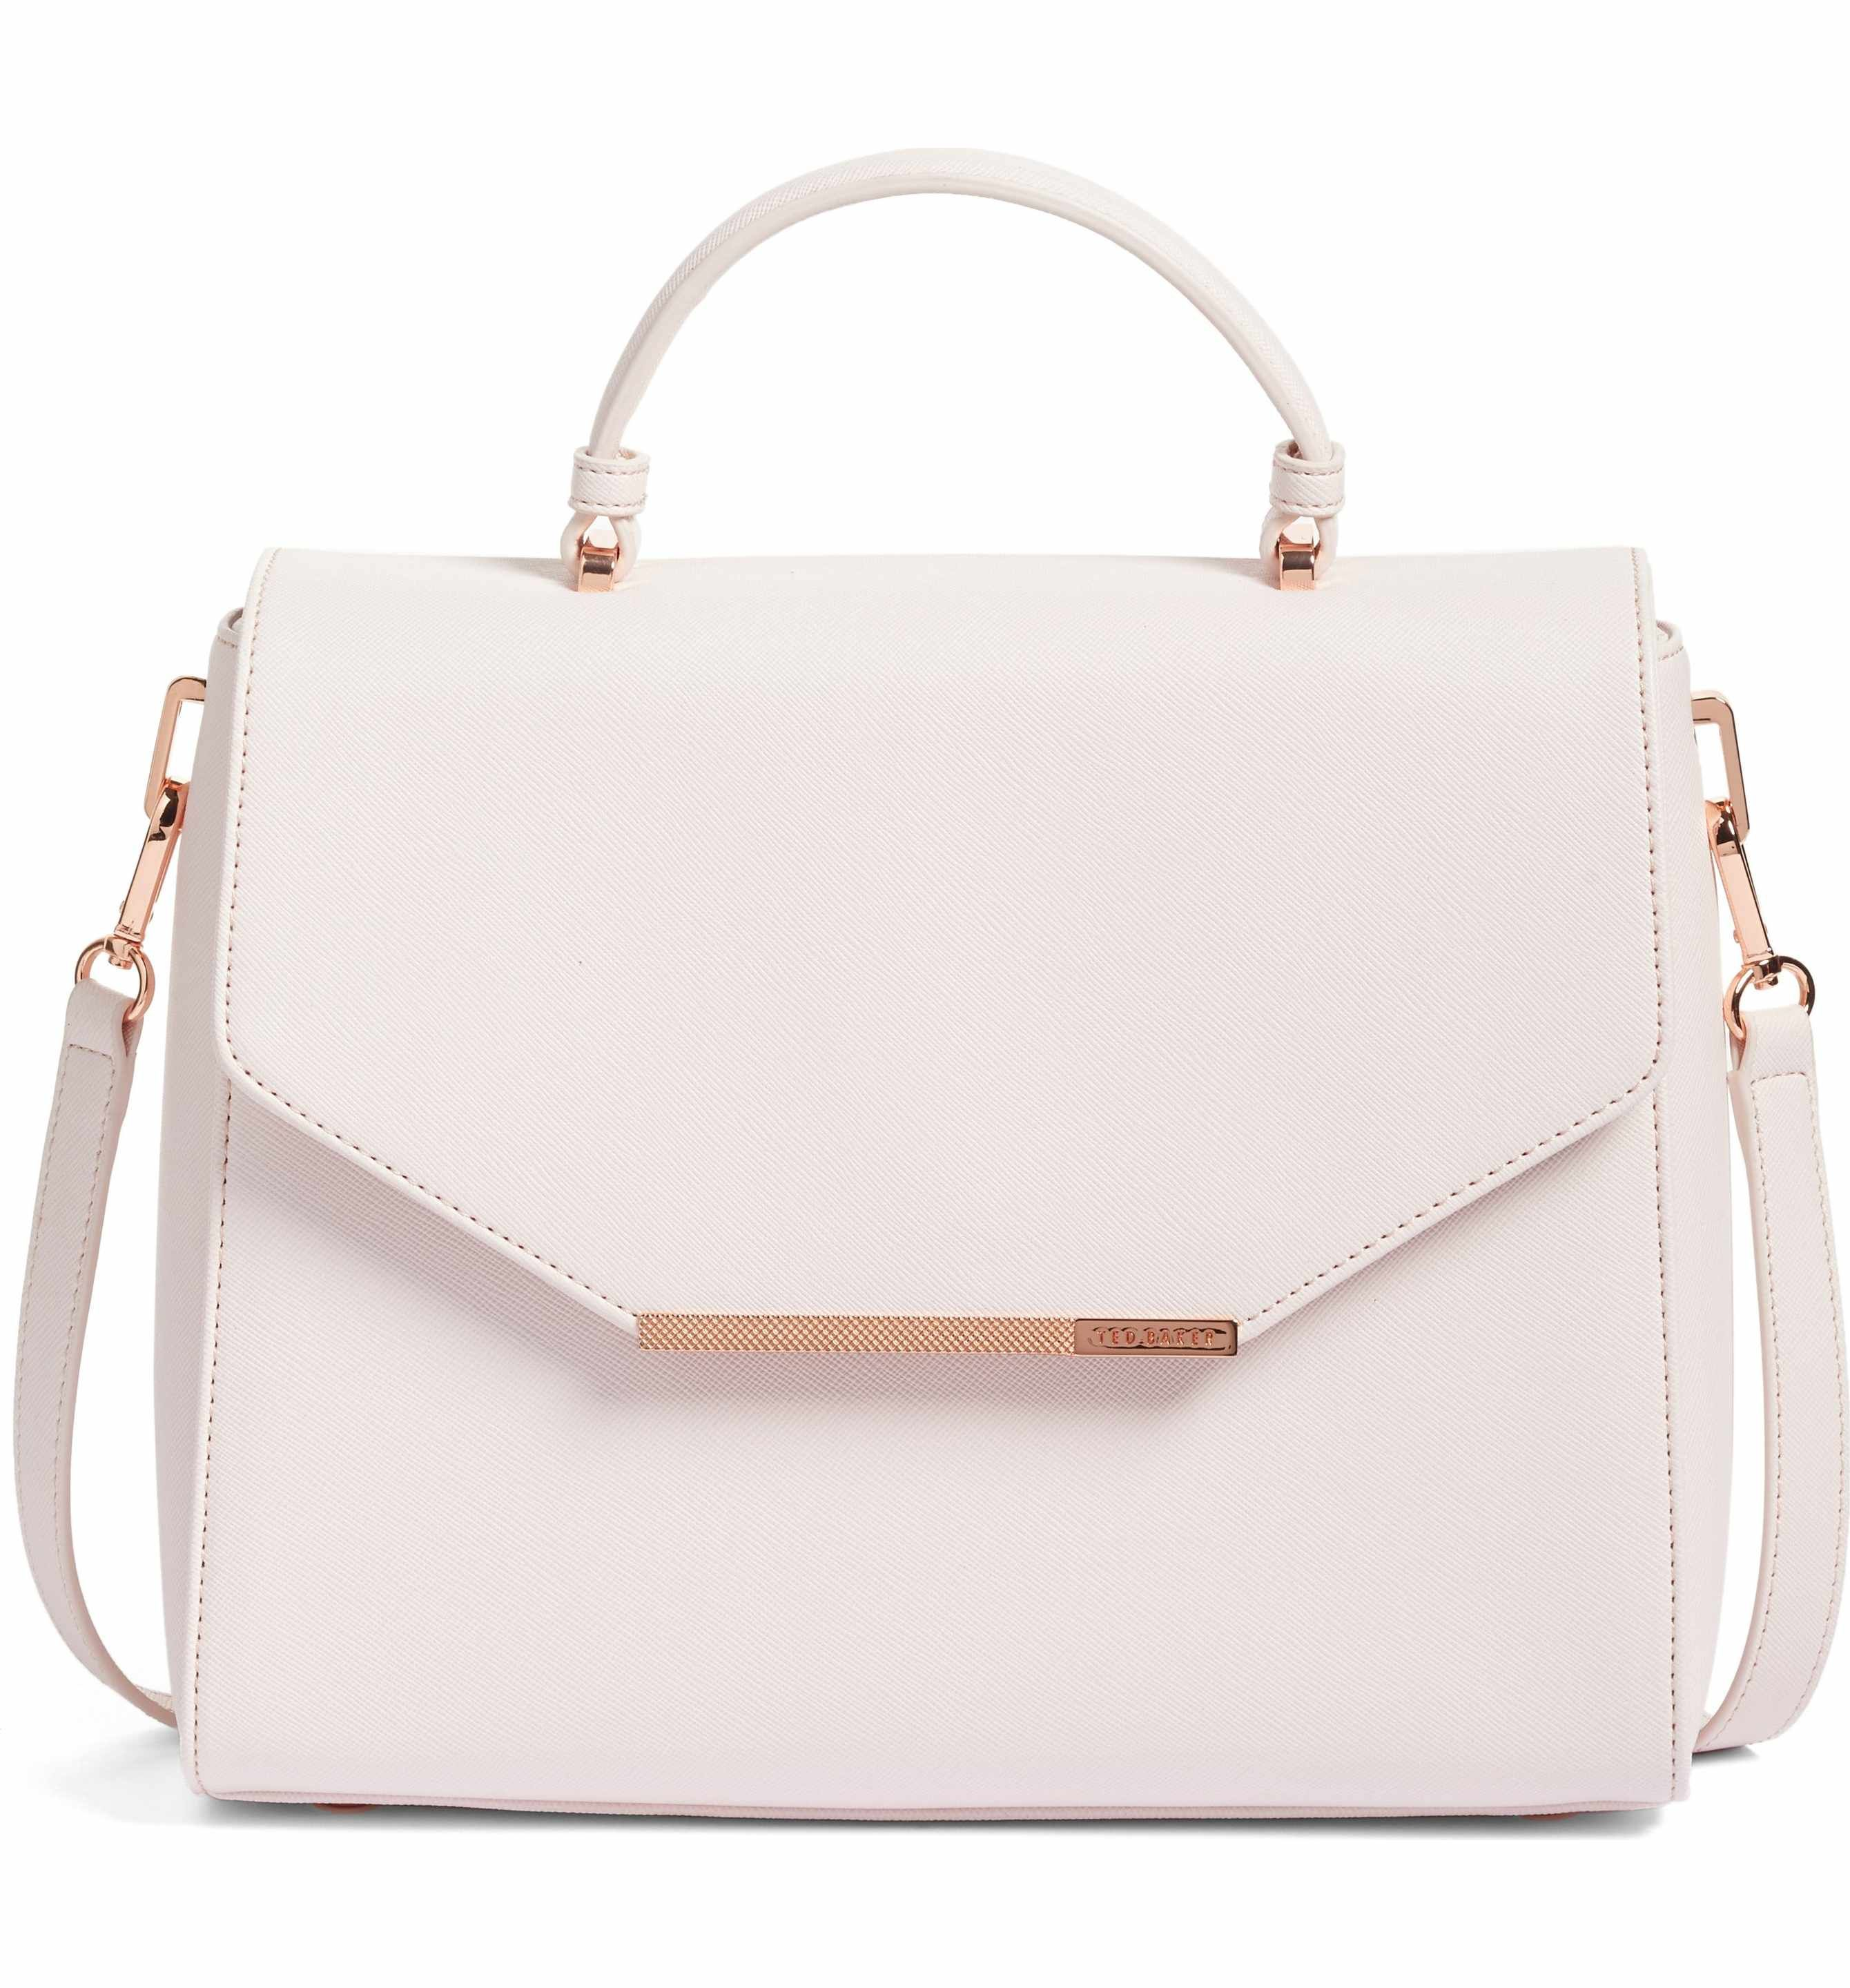 5e7d302b09d27 Main Image - Ted Baker London Large Dajana Faux Leather Top Handle Satchel  (Nordstrom Exclusive)